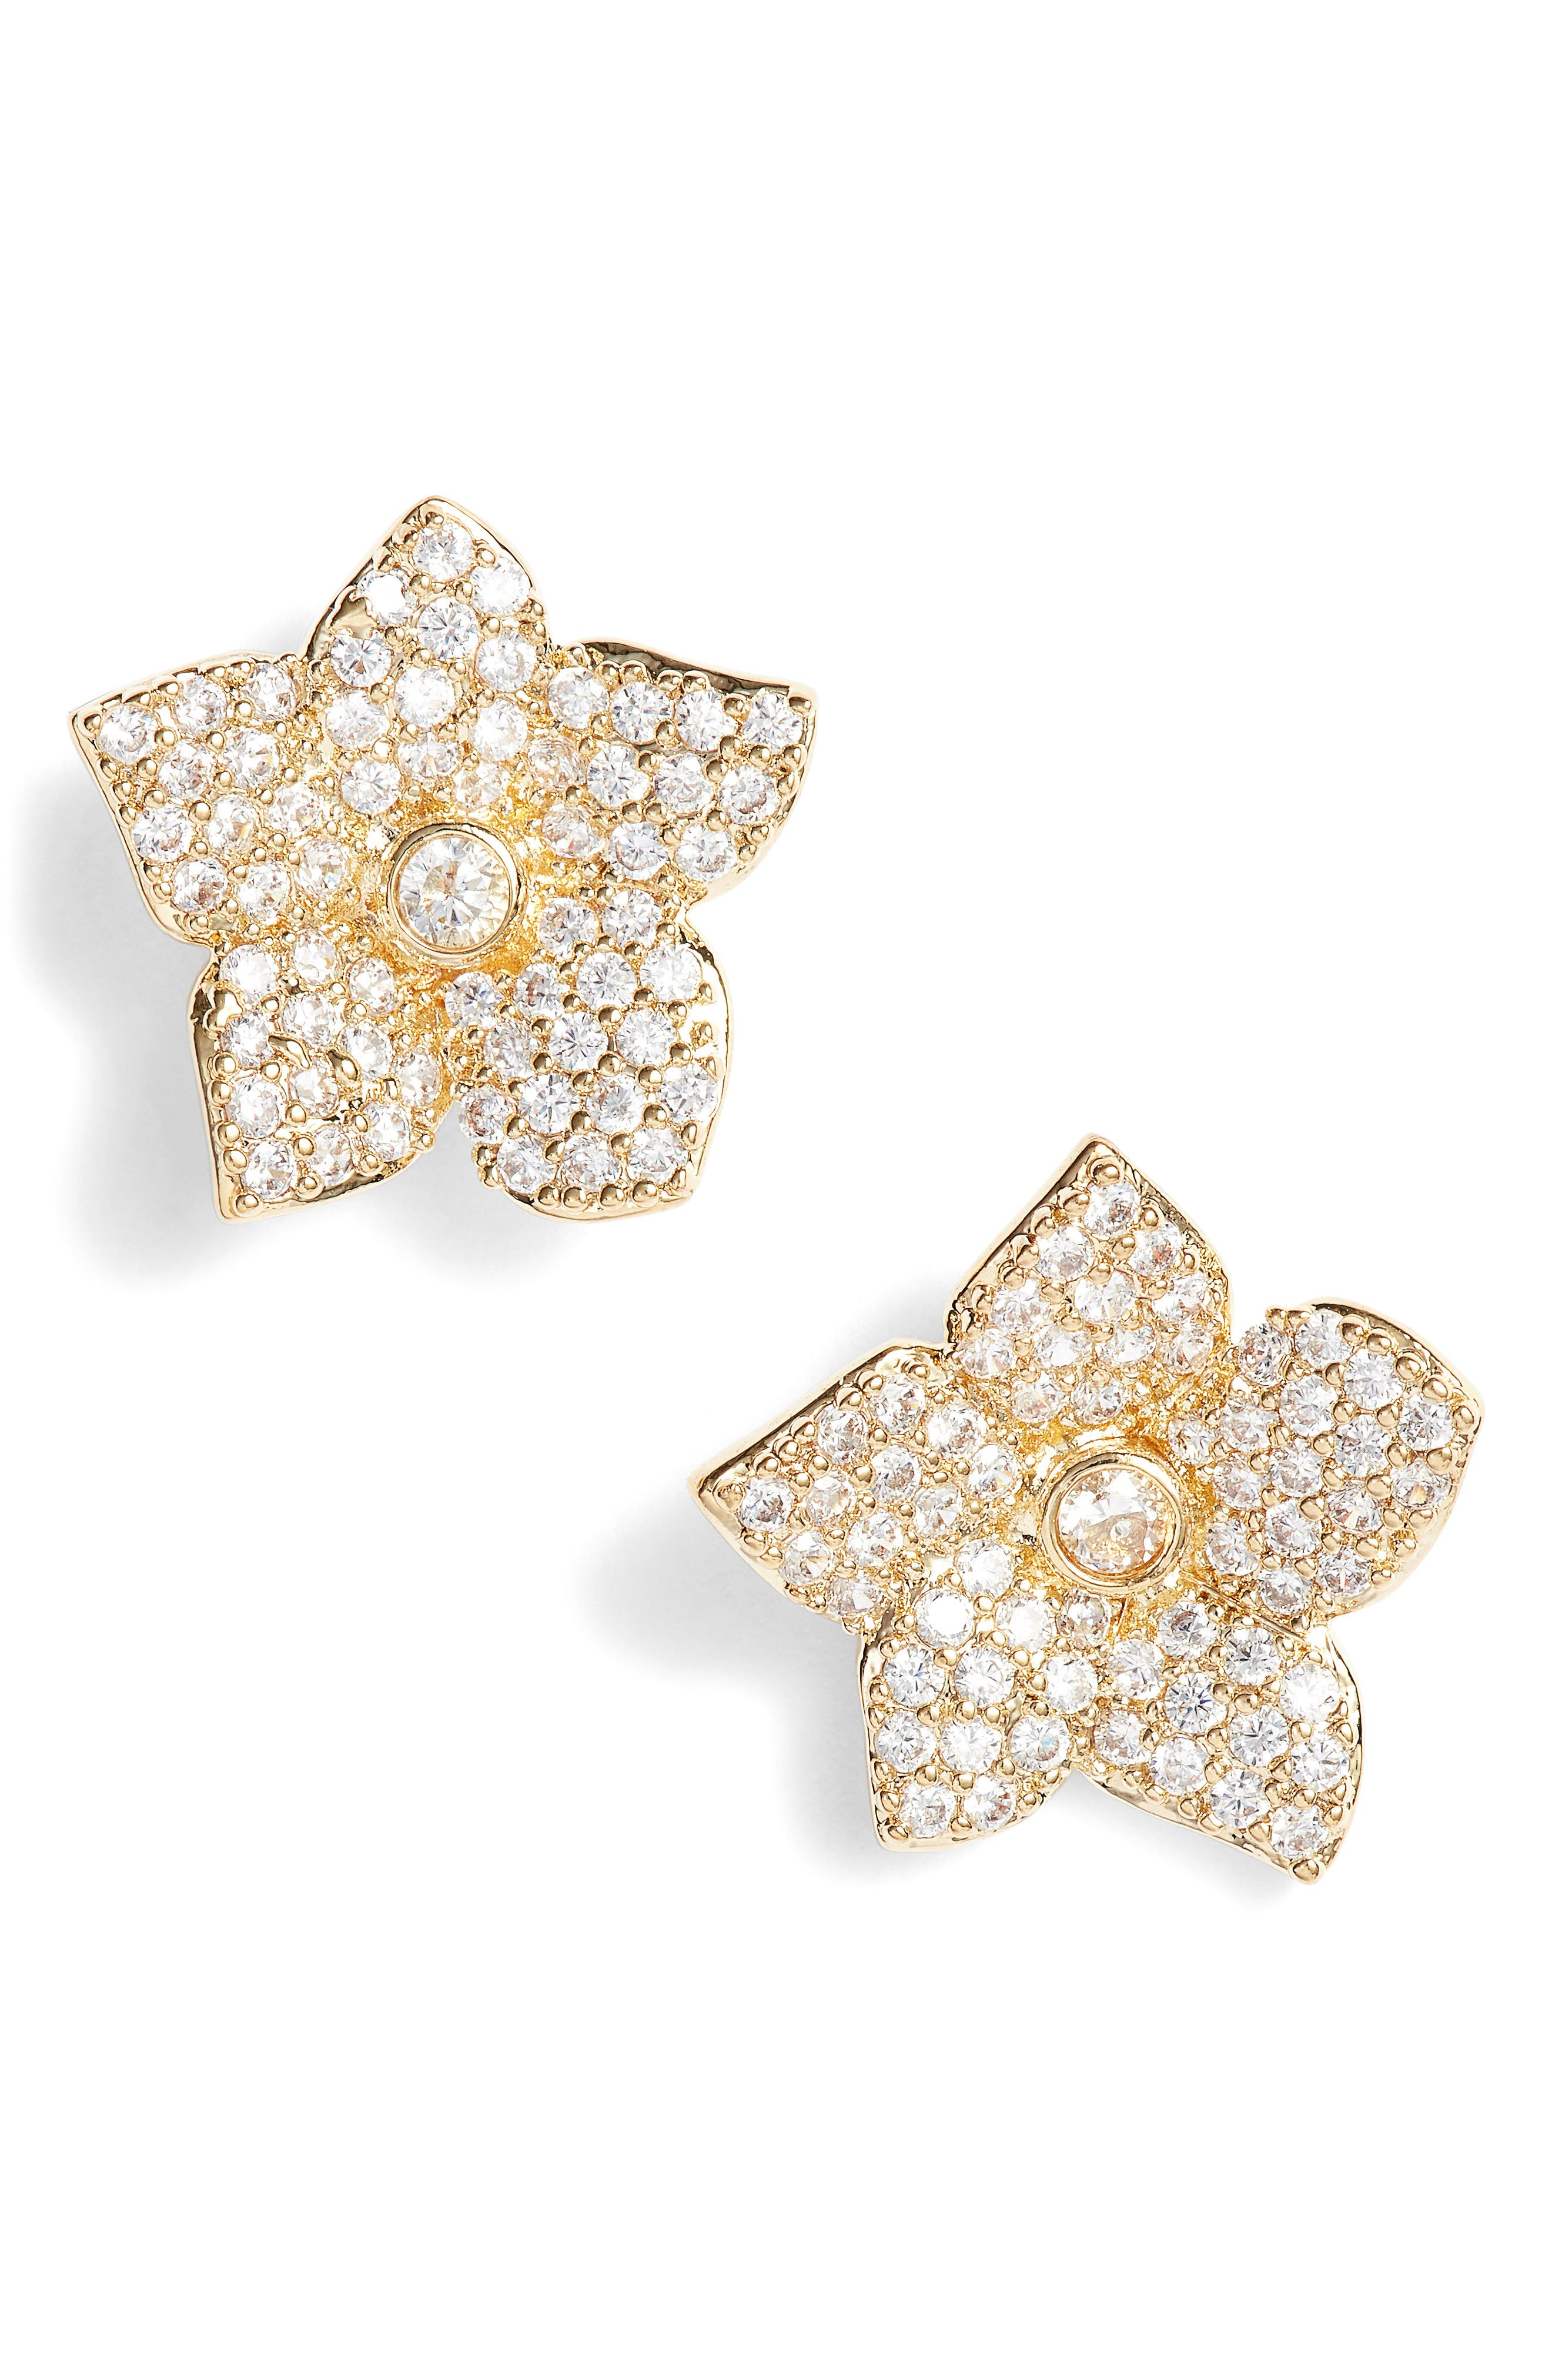 Kate Spade Blooming Pavé Stud Earrings,                             Main thumbnail 1, color,                             Gold